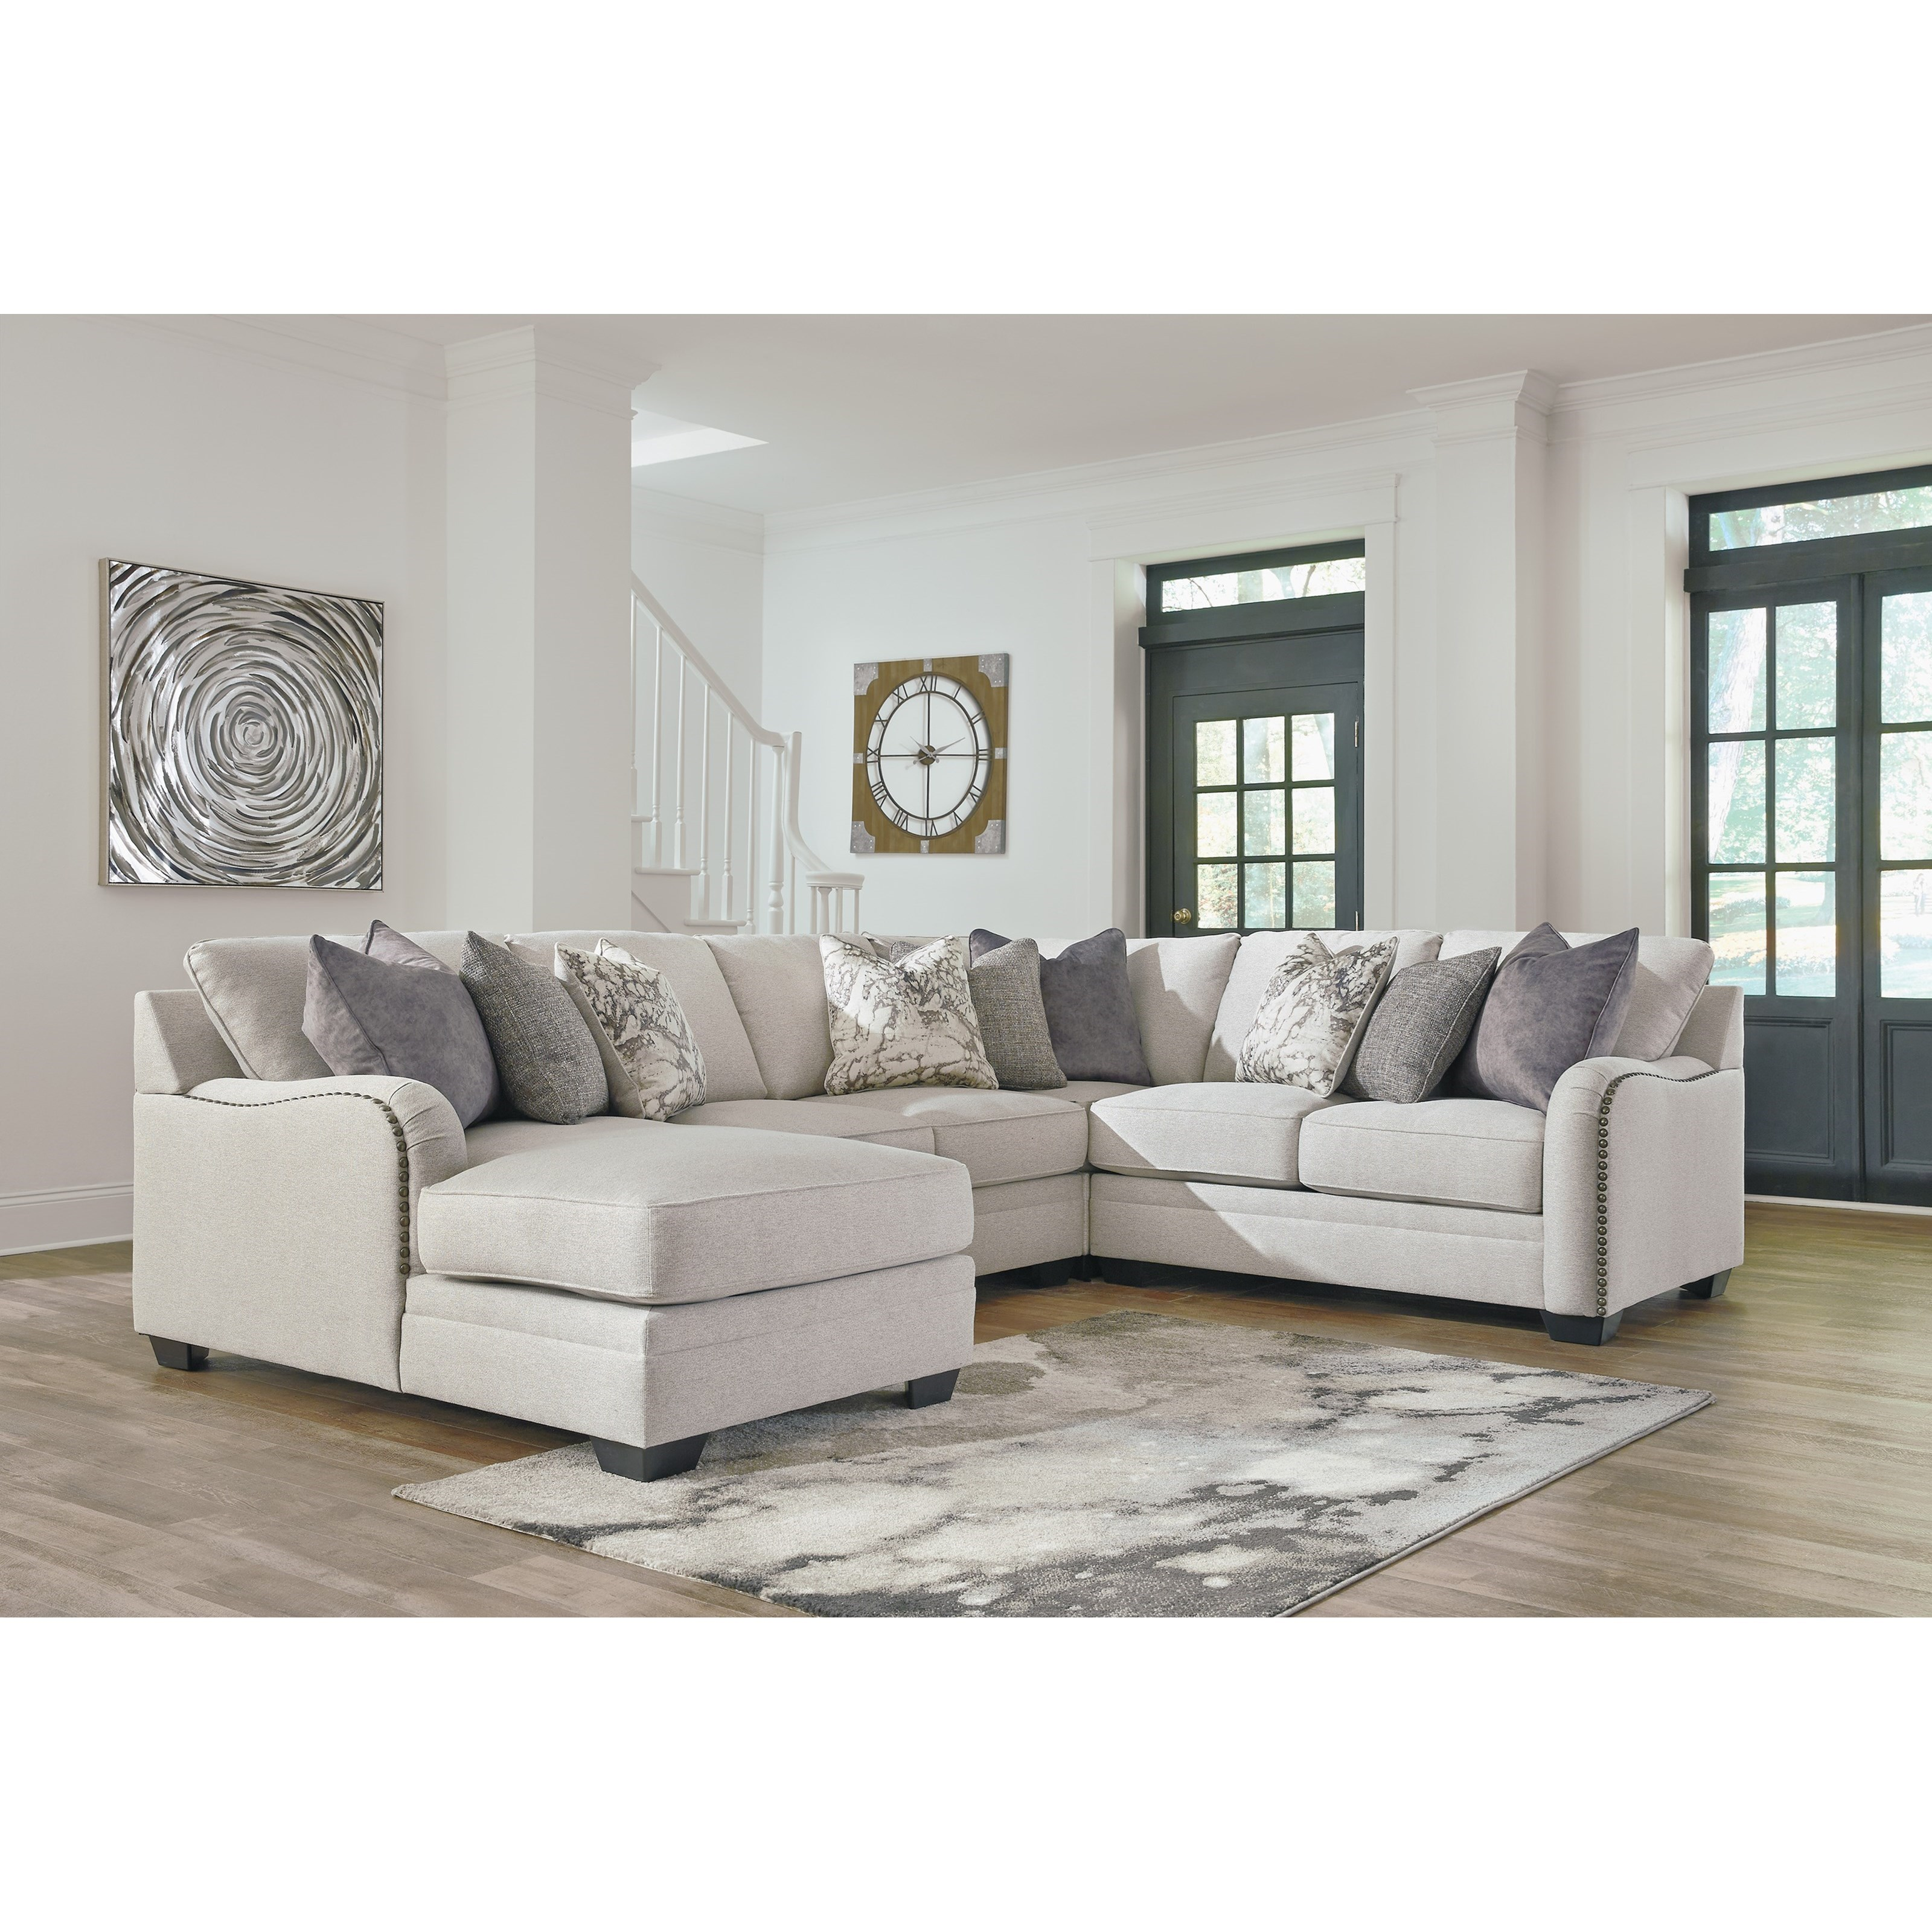 Casual 4-Piece Sectional with Left Chaise